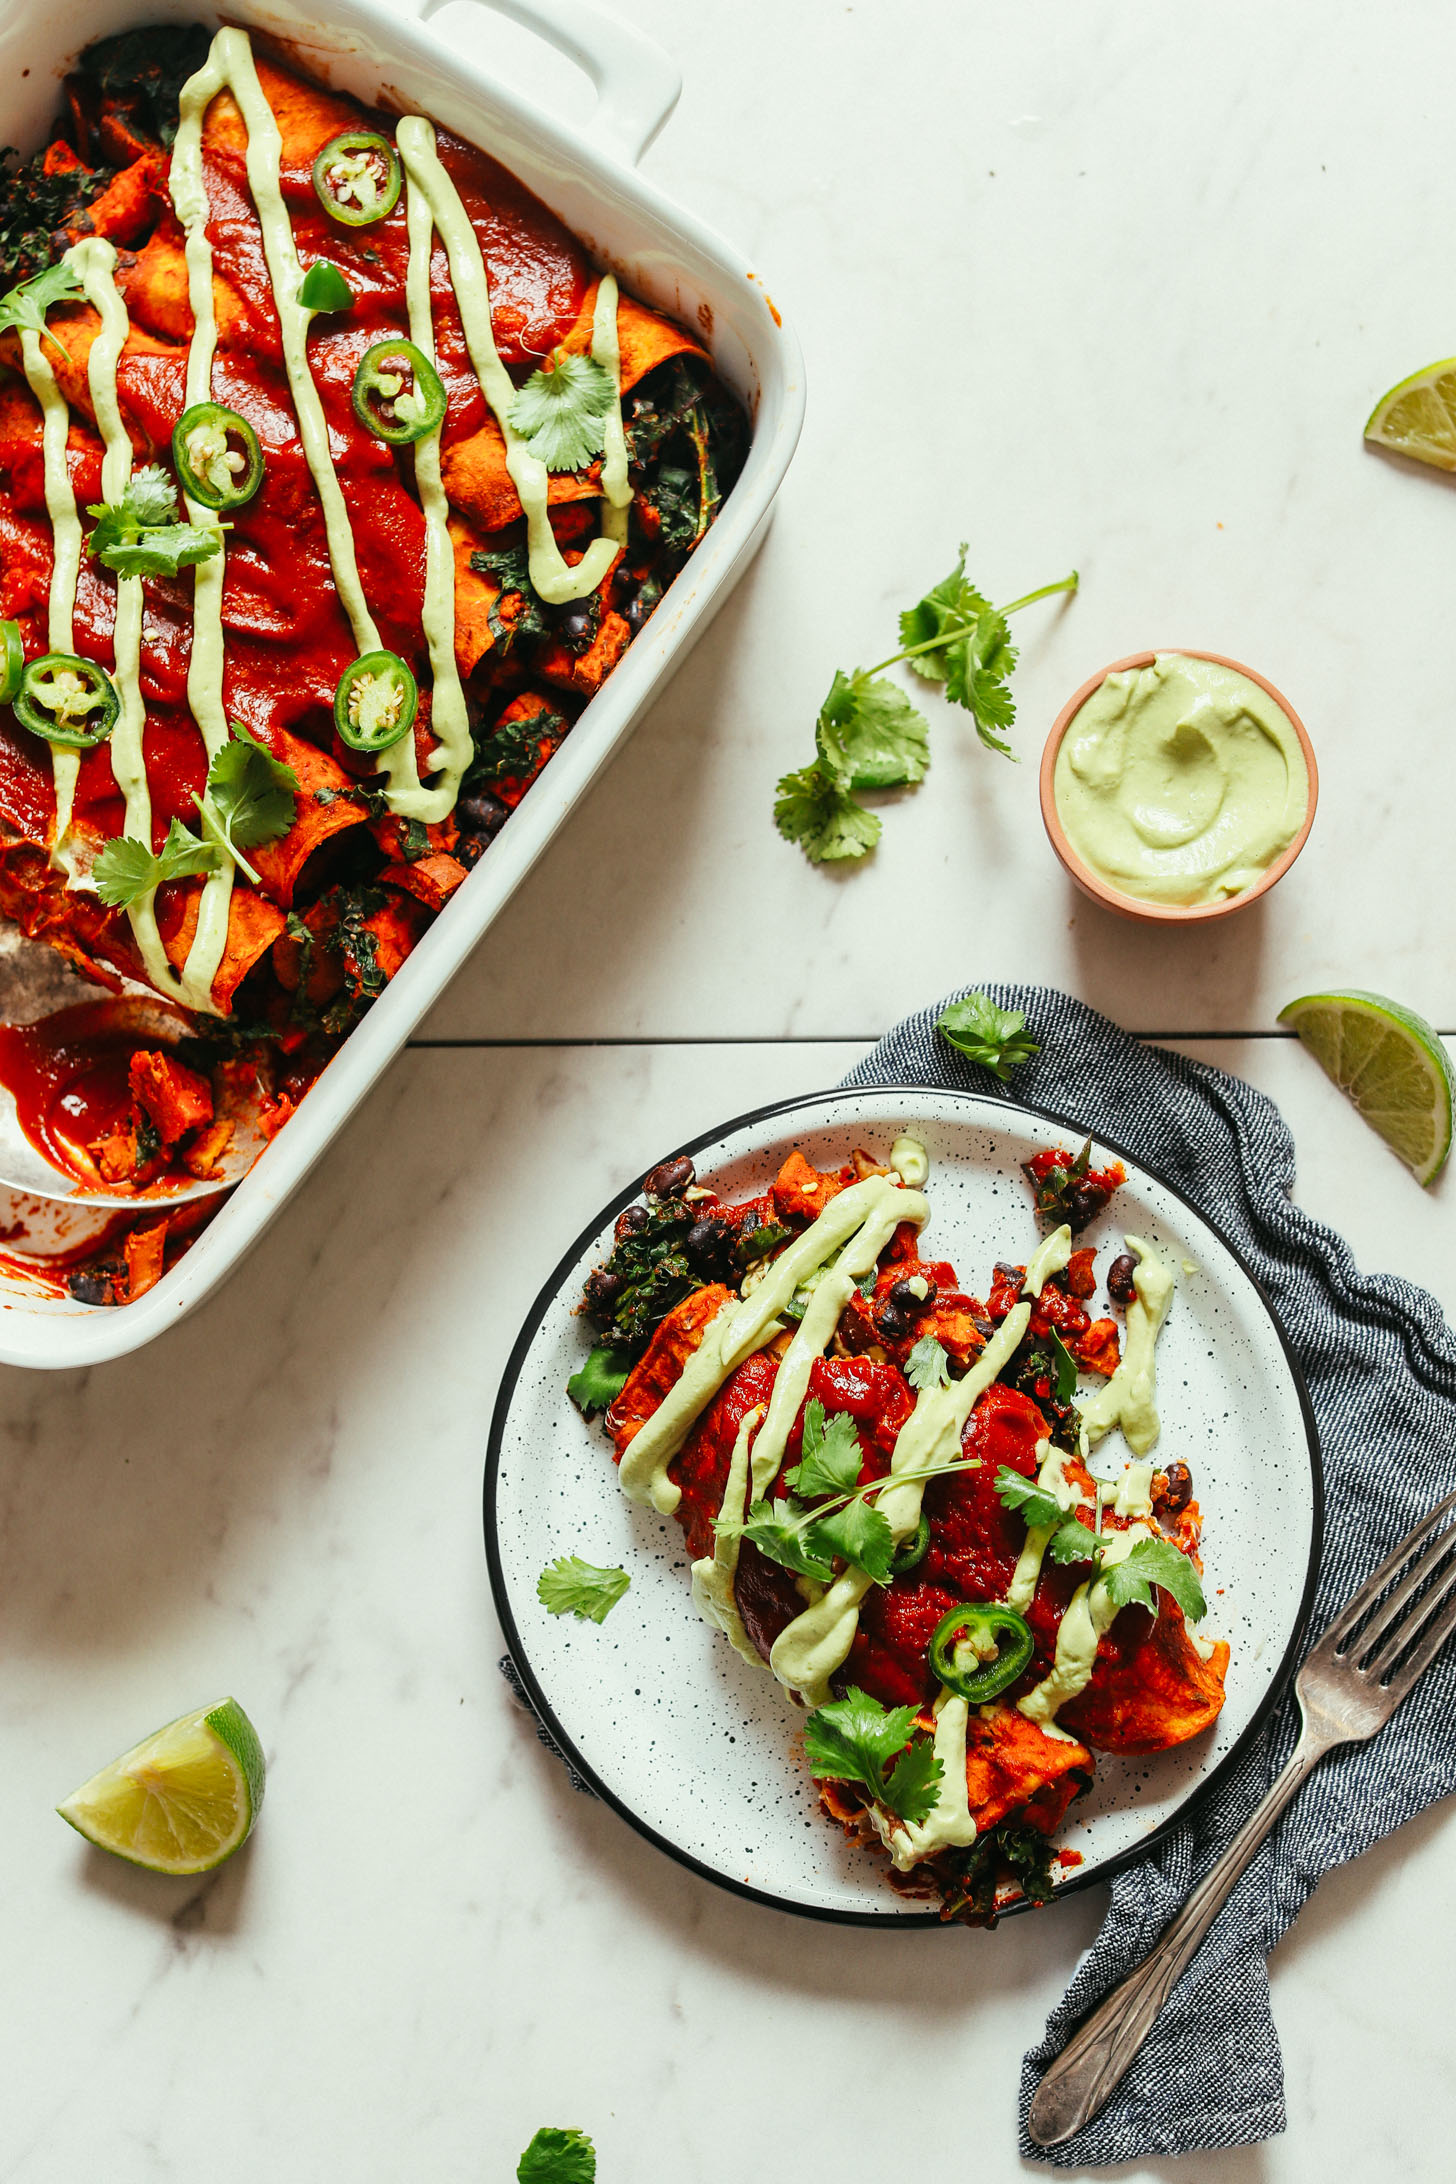 Baking pan and plate full of gluten-free vegan Sweet Potato Black Bean Enchiladas